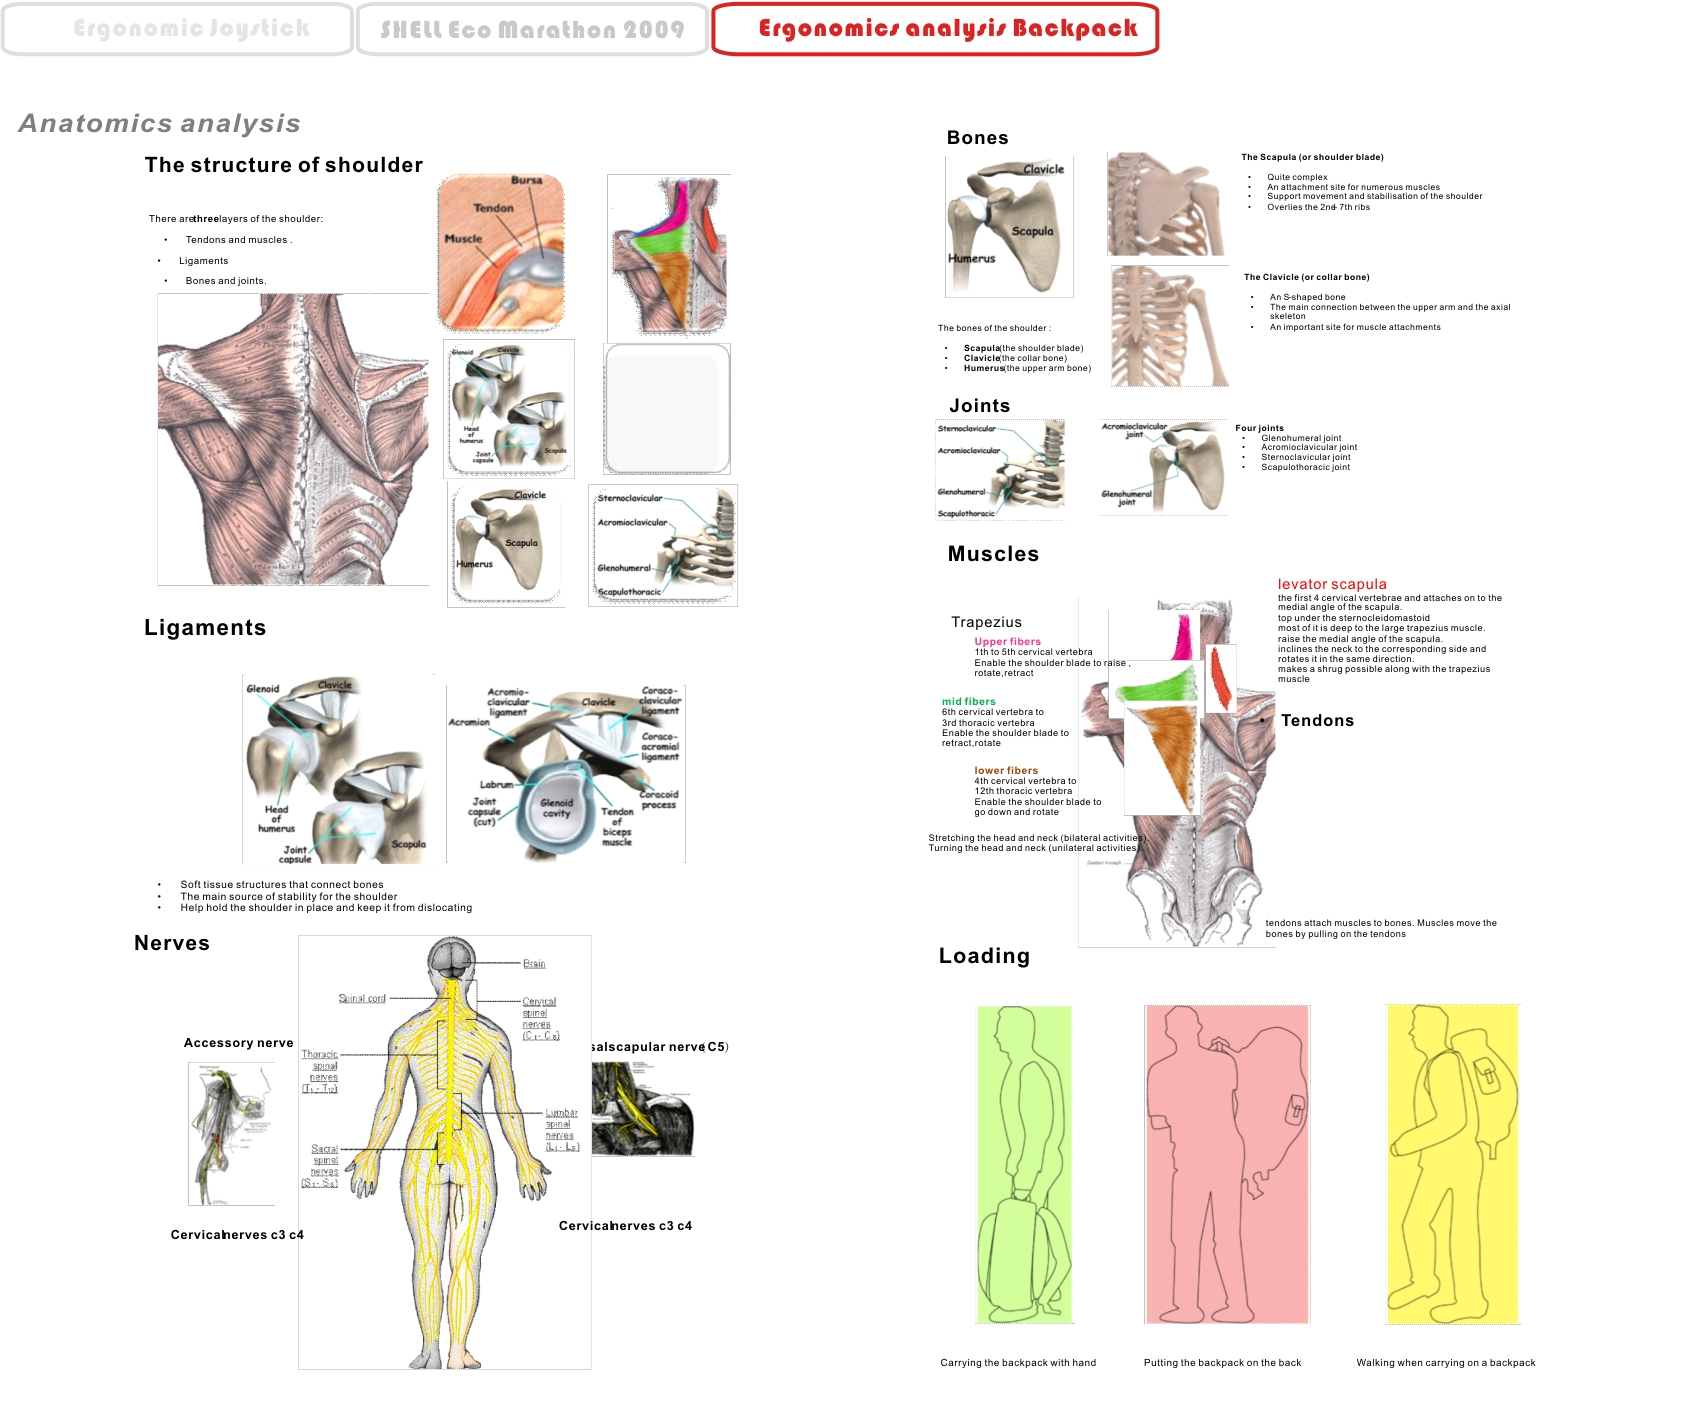 ergonomic analysis Ergonomic analysis provides visual body maps and user defined check lists to highlight and quantify safety and quality related issues.